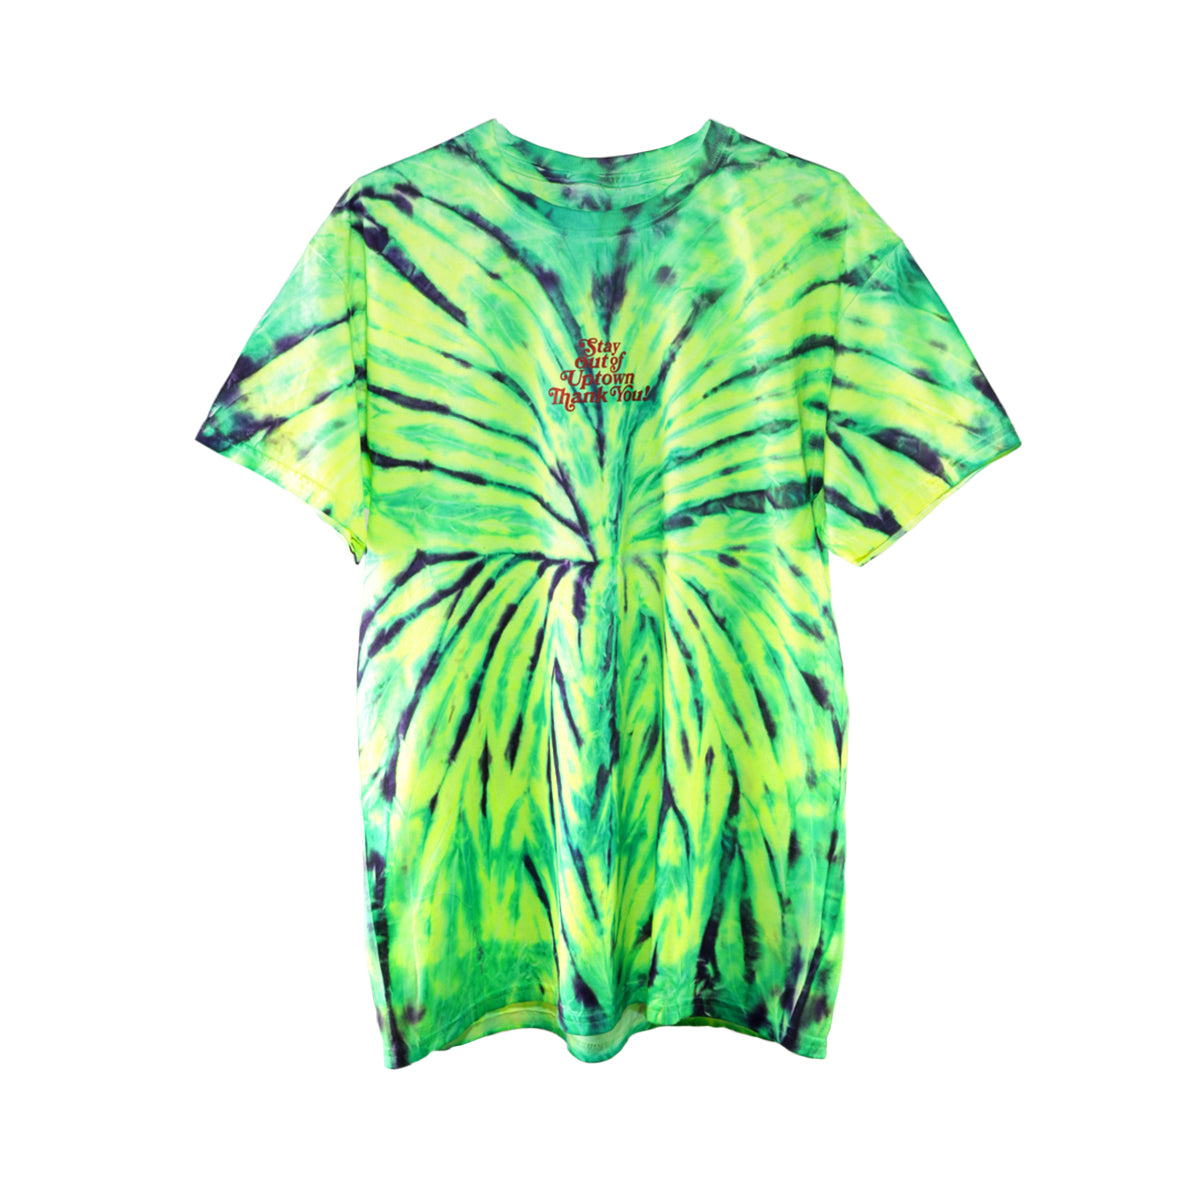 Stay Out of Uptown Tie Dye - Wild Spider